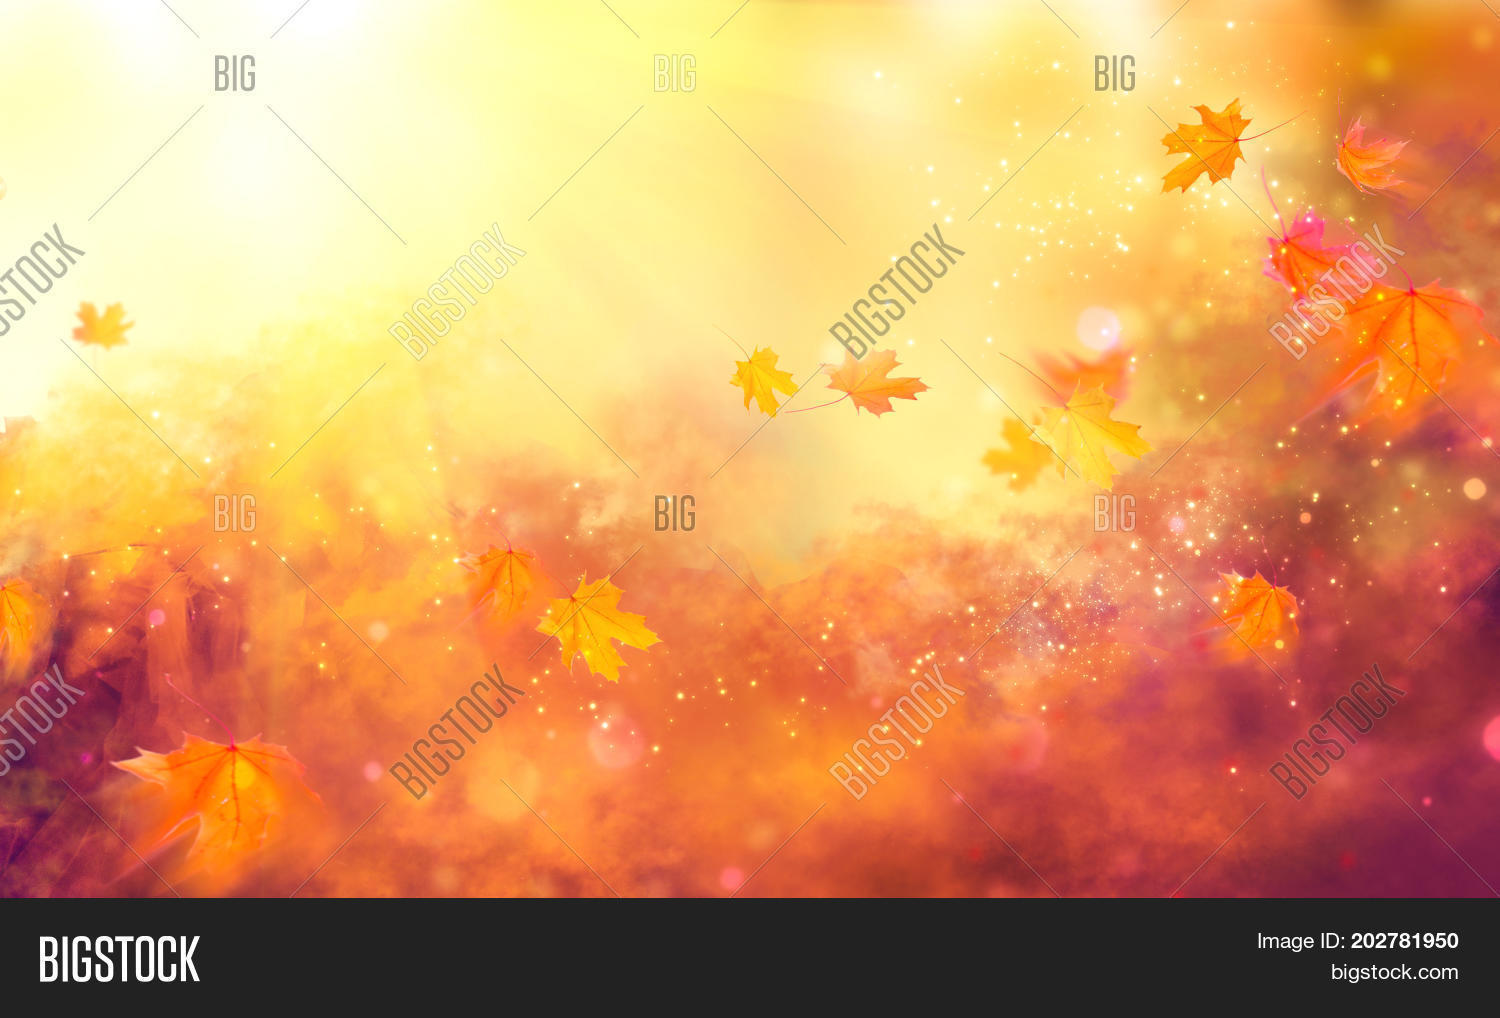 Autumn background. Fall Abstract autumnal background with colorful leaves and sun flares, flying on